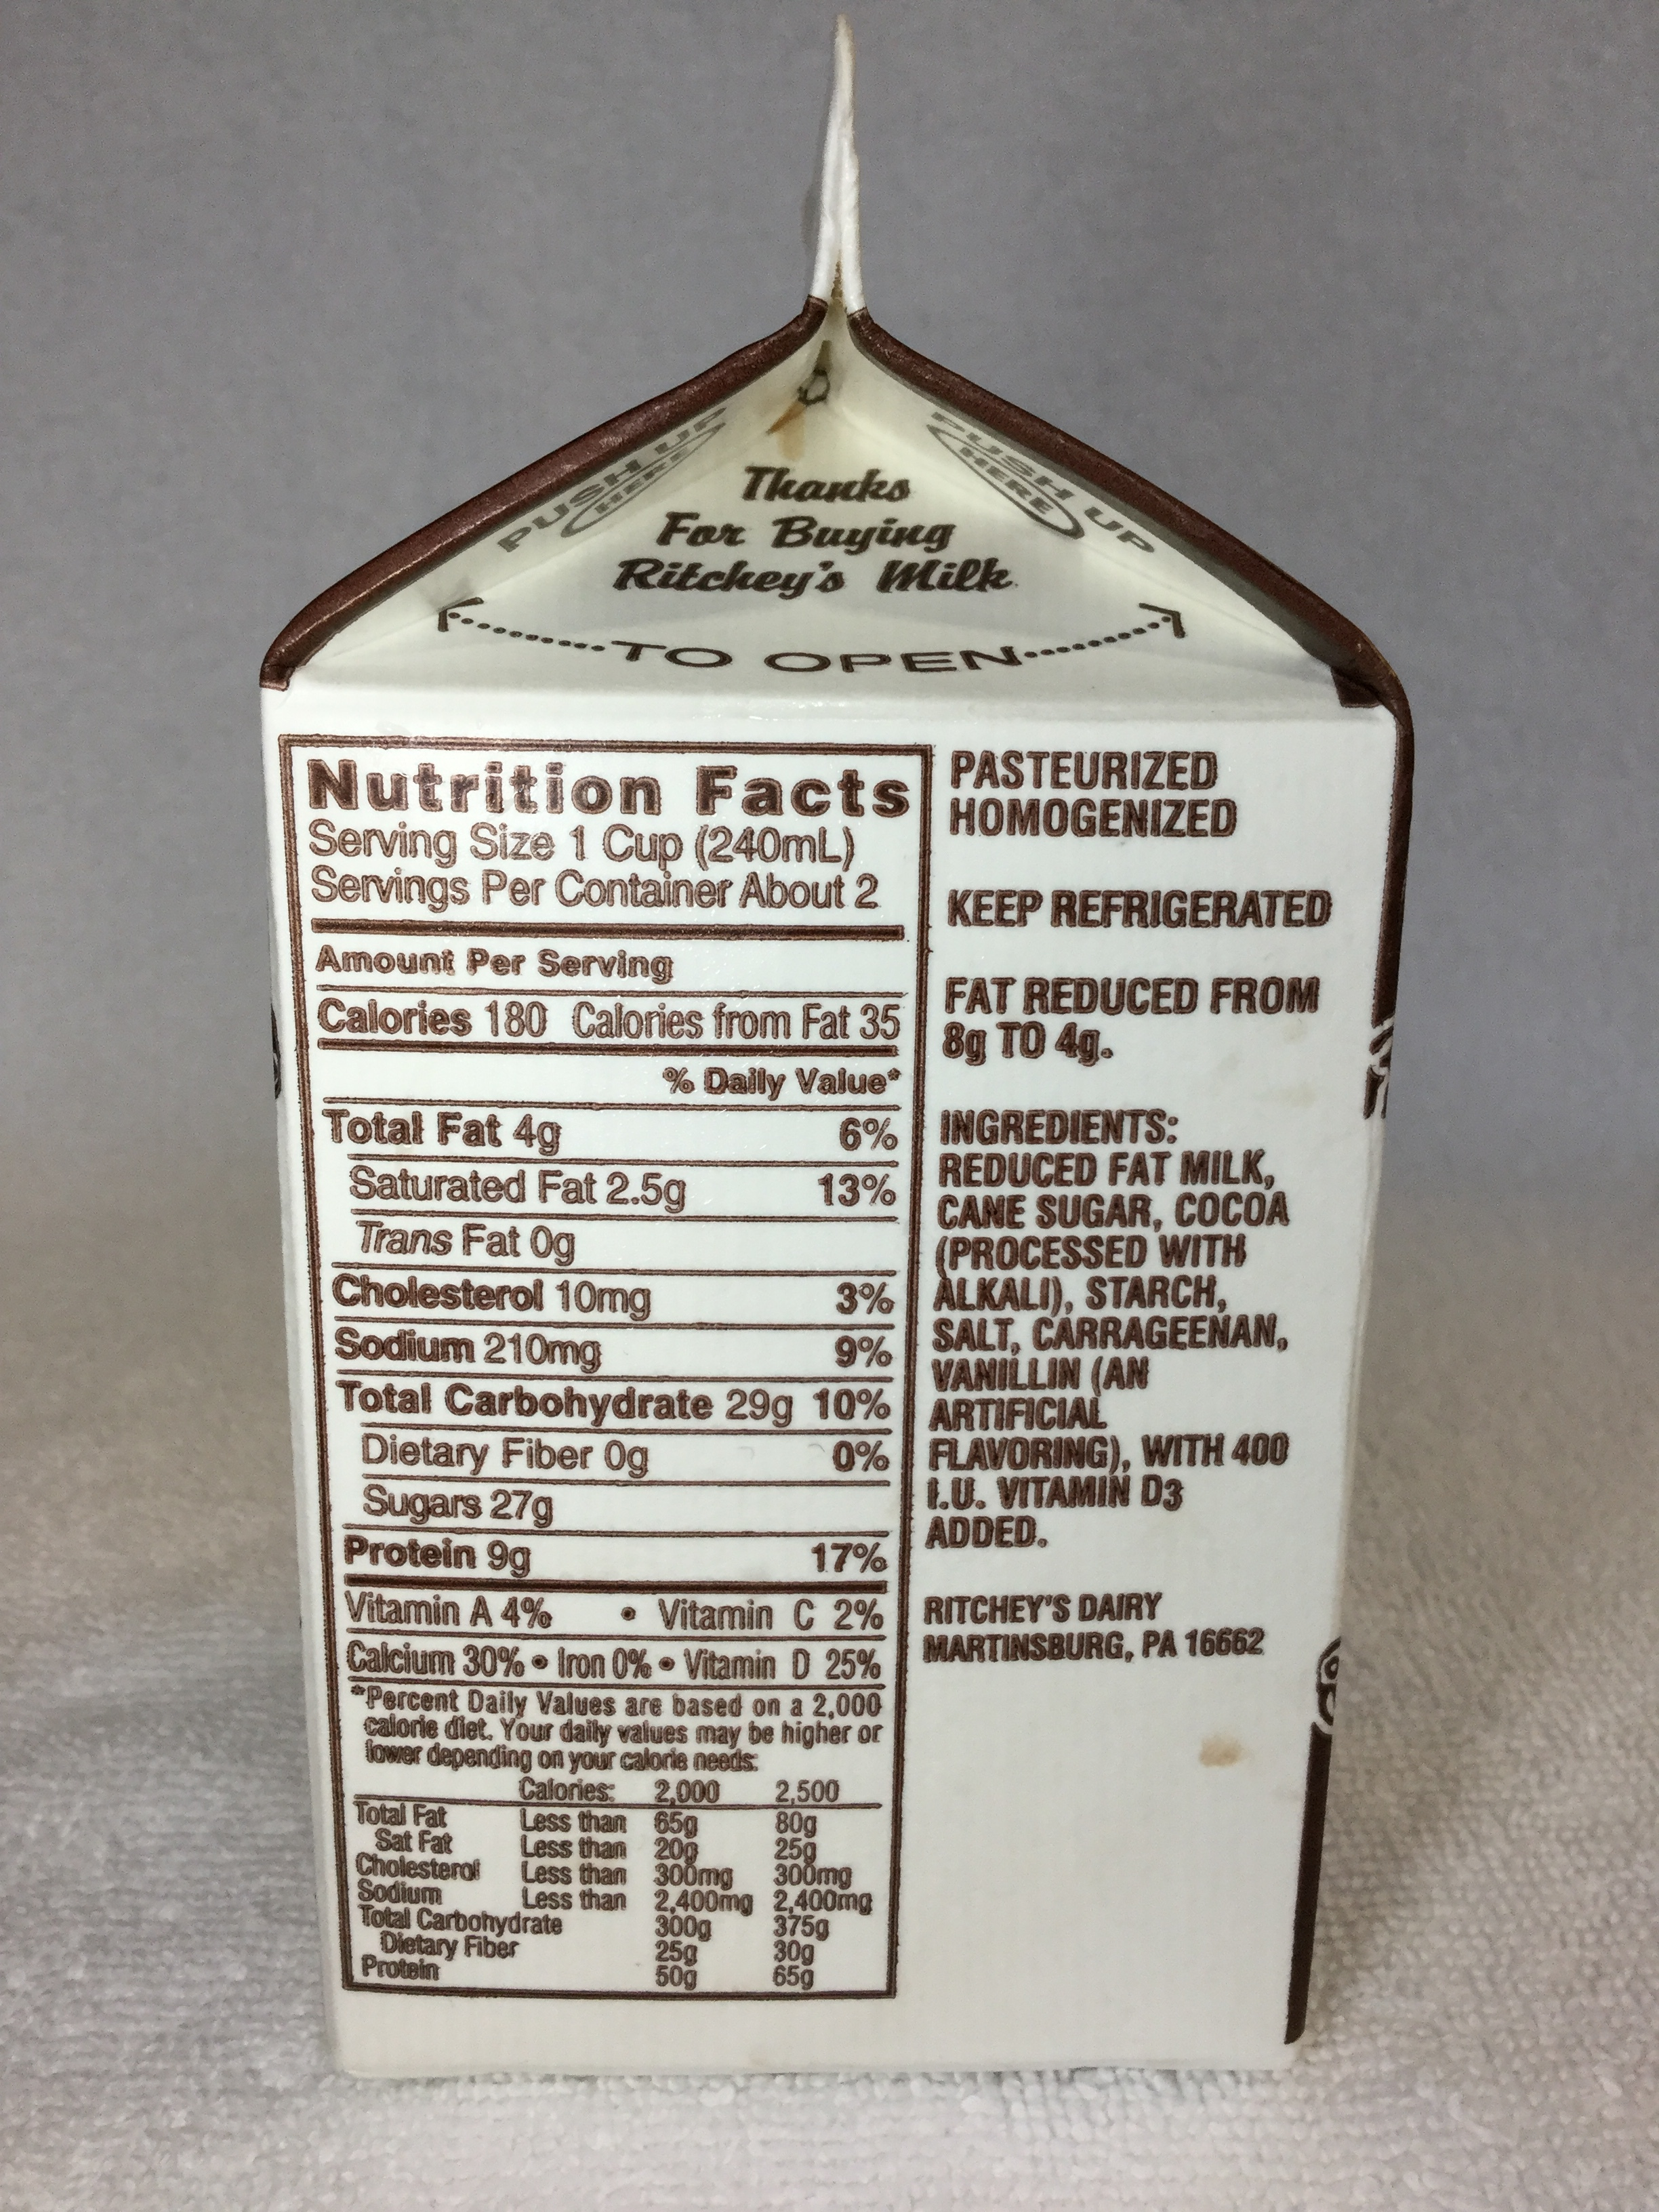 Ritchey's Country Fresh Chocolate Milk Side 1